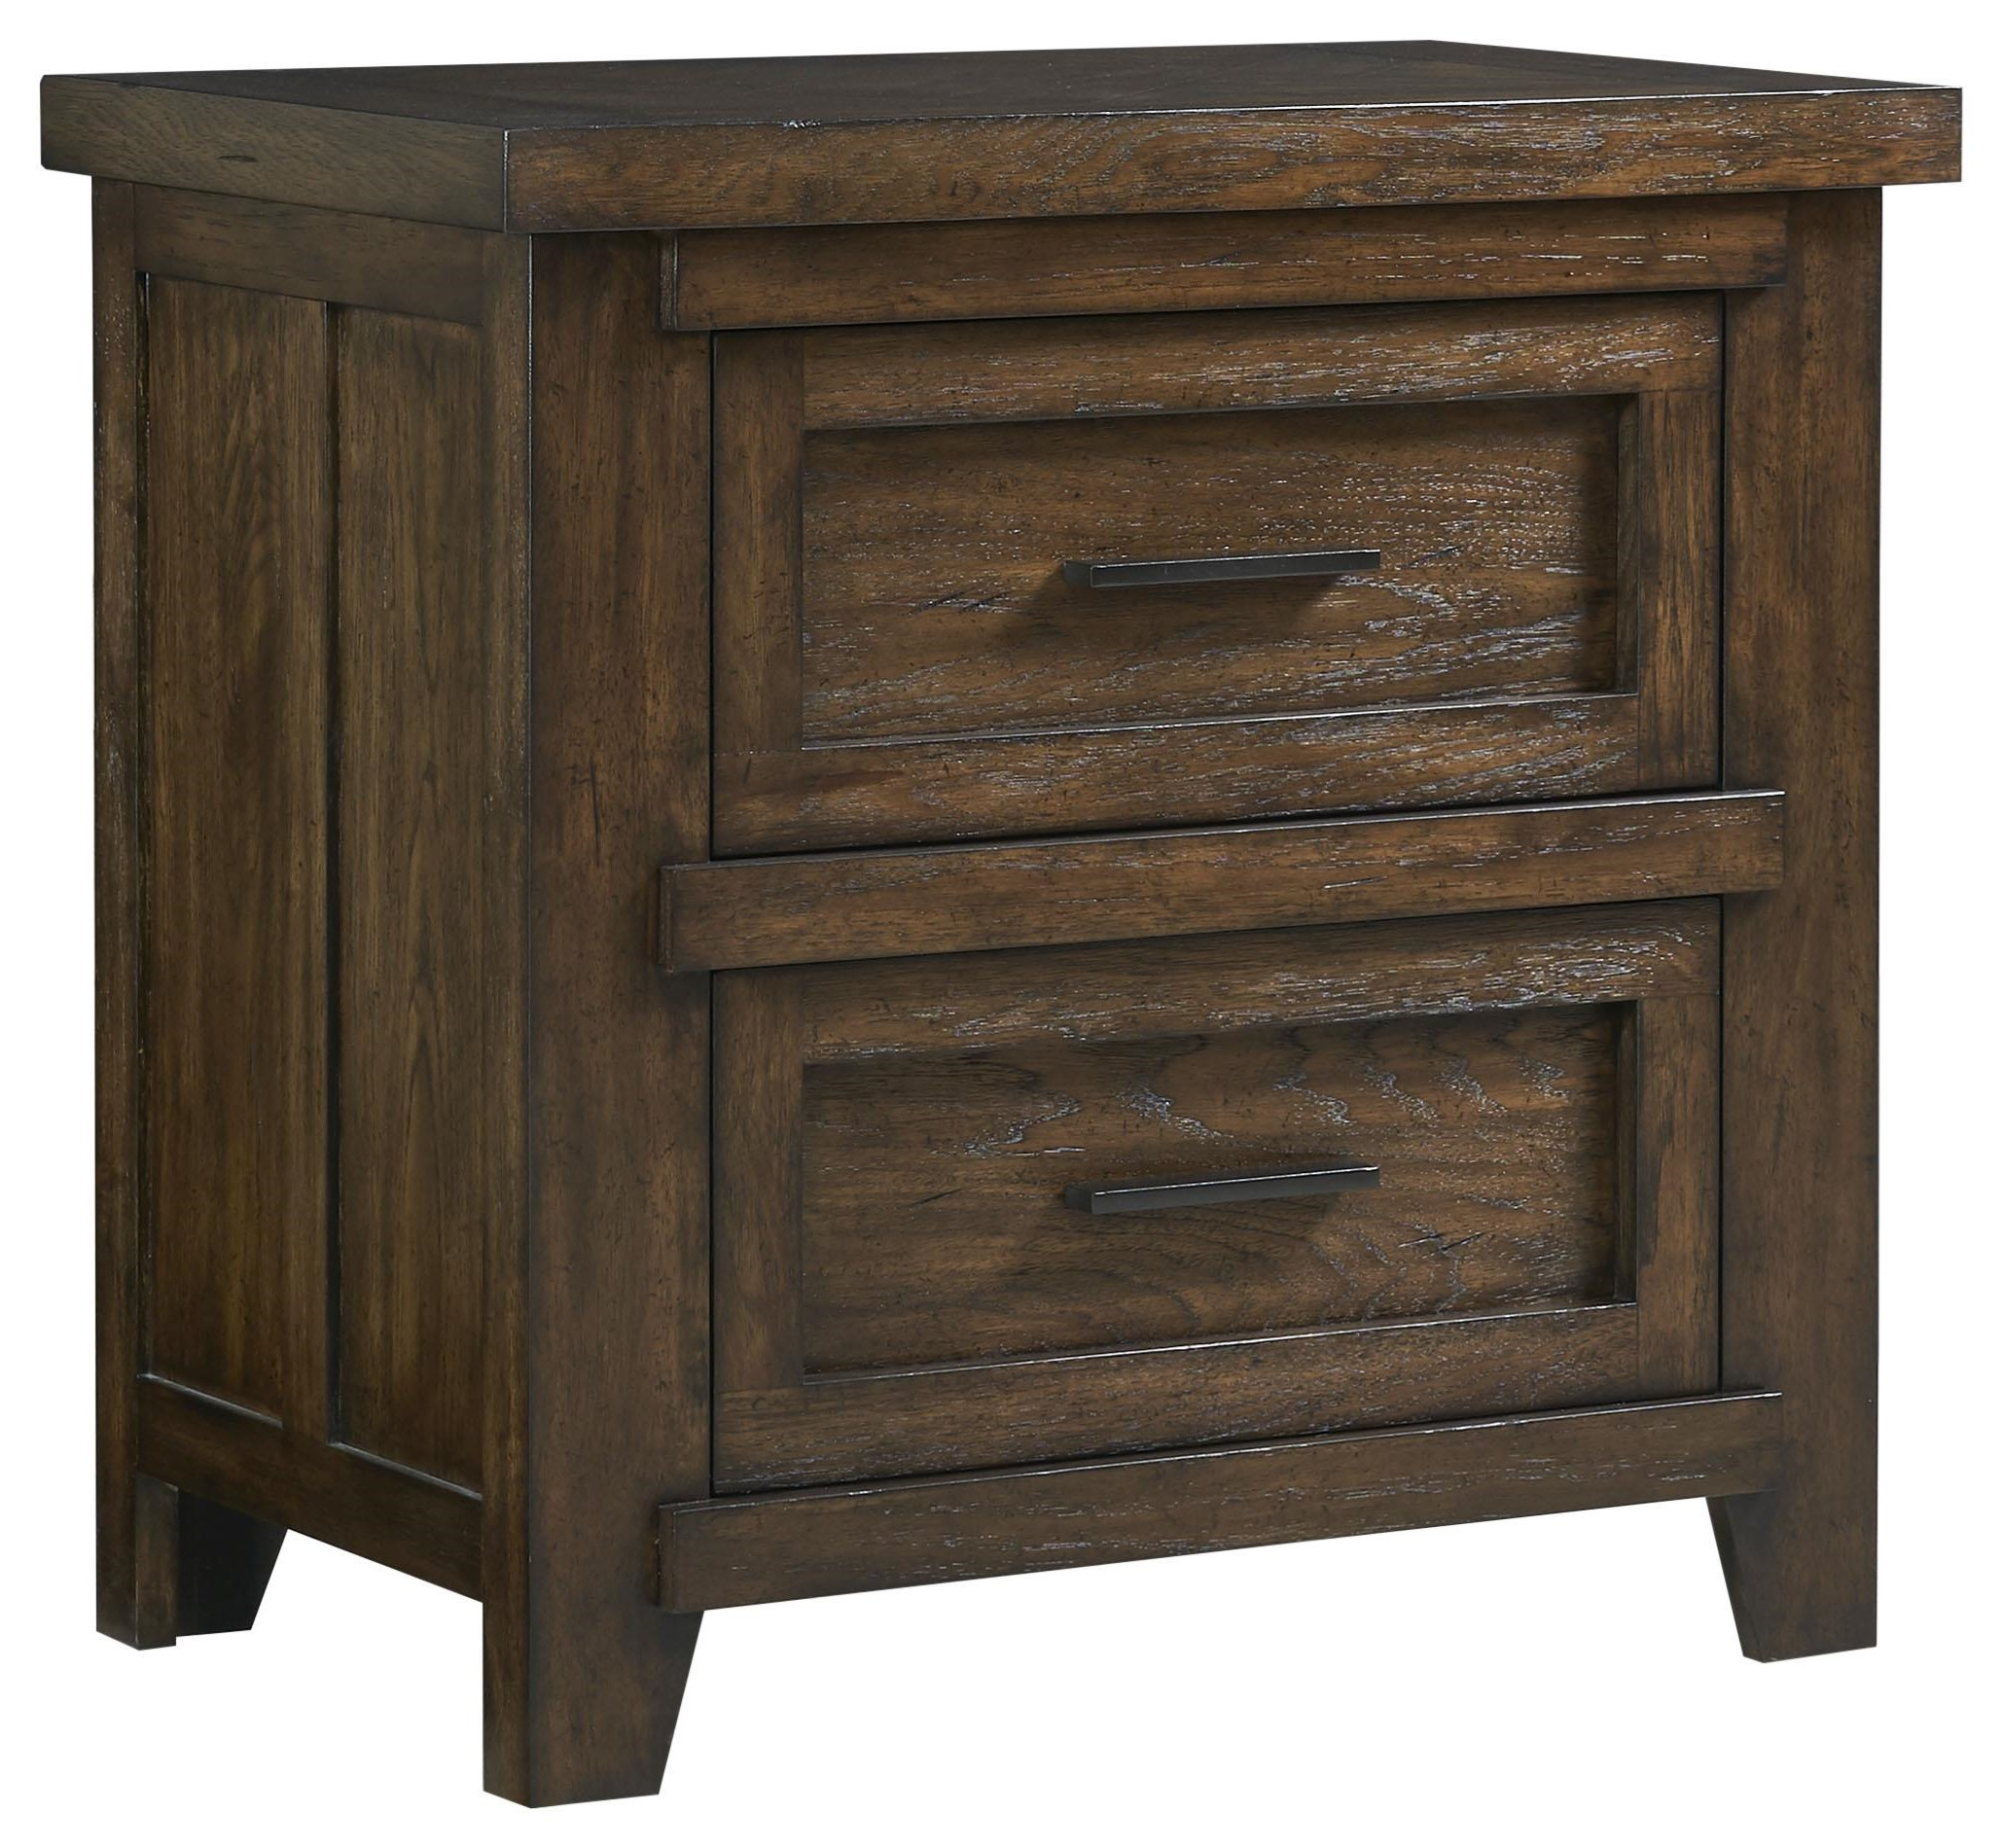 Tally's Crossing Nightstand by FD Home at Darvin Furniture